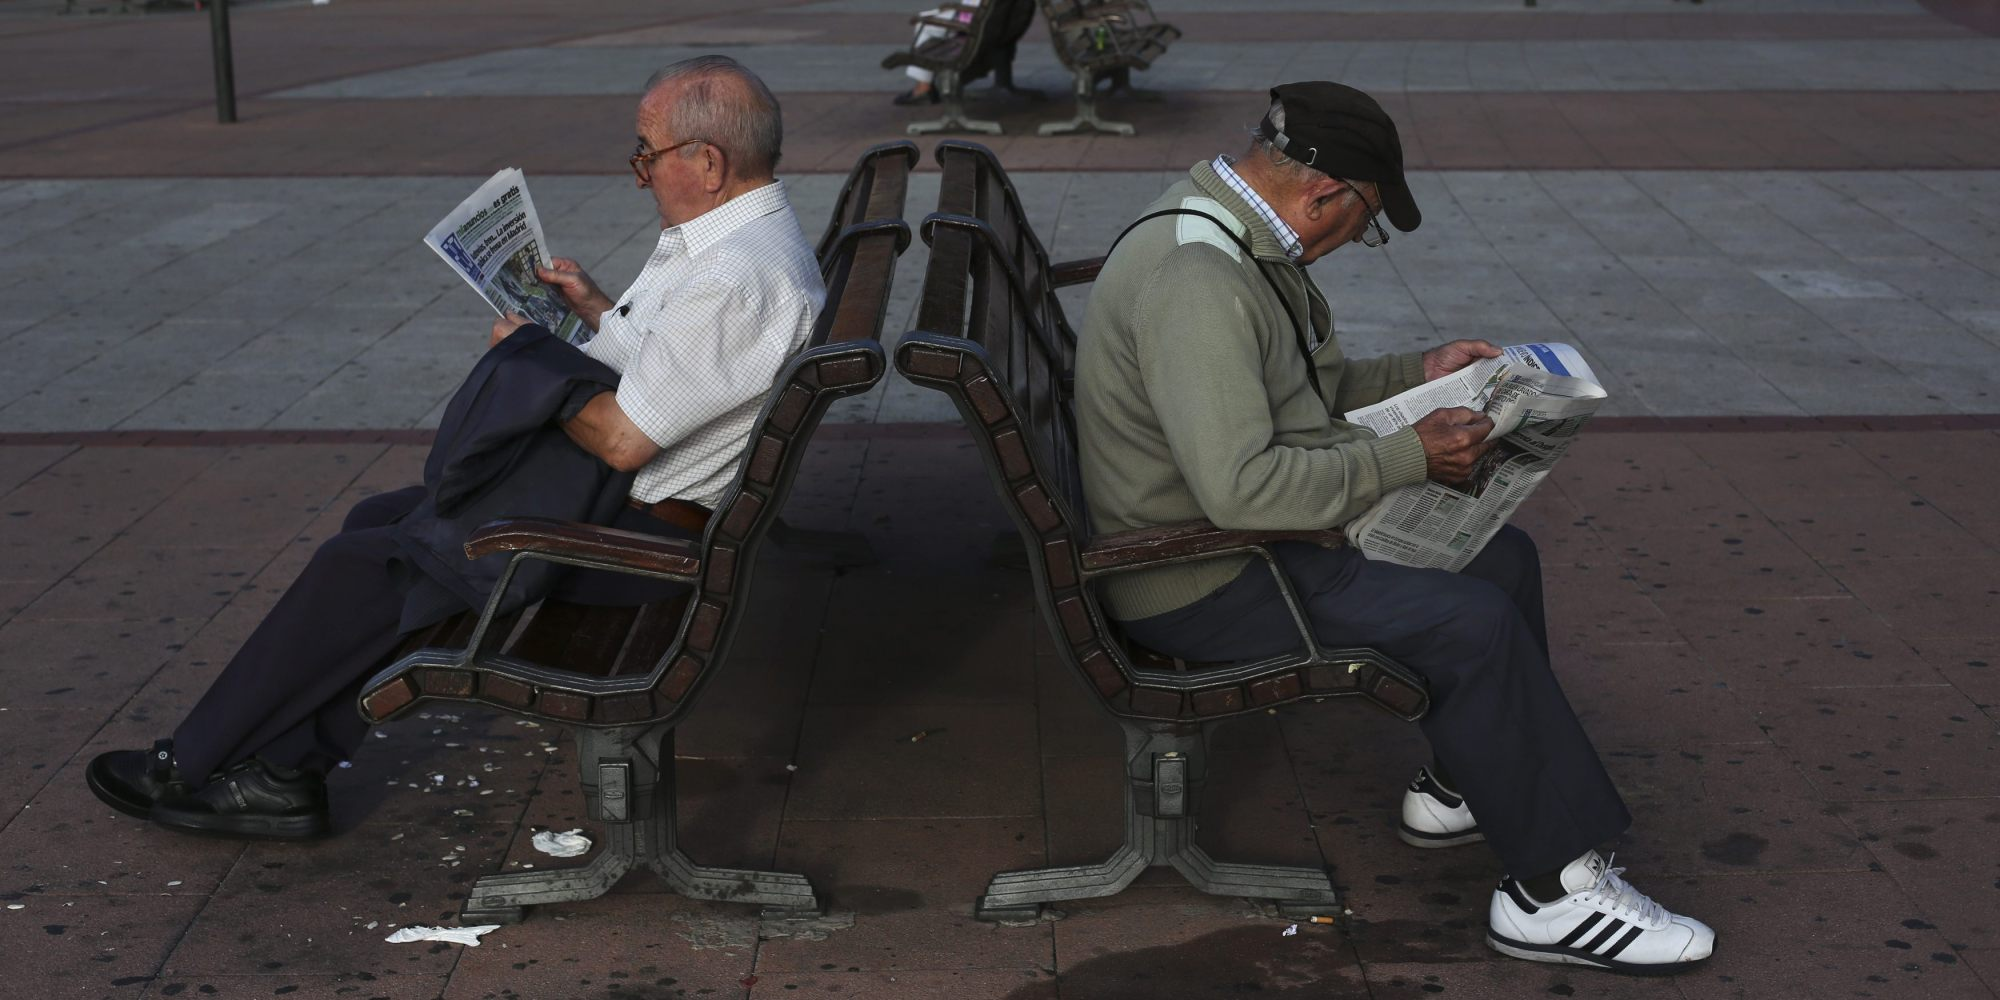 Pensioners read a free newspaper as they sit on public benches in Madrid October 2, 2013. Spain will use 11.6 billion euros ($15.70 billion) of the pension reserve fund in 2013 to pay pensions, Spain's Labour Minister Fatima Banez said on Tuesday. REUTERS/Susana Vera (SPAIN - Tags: BUSINESS EMPLOYMENT SOCIETY)